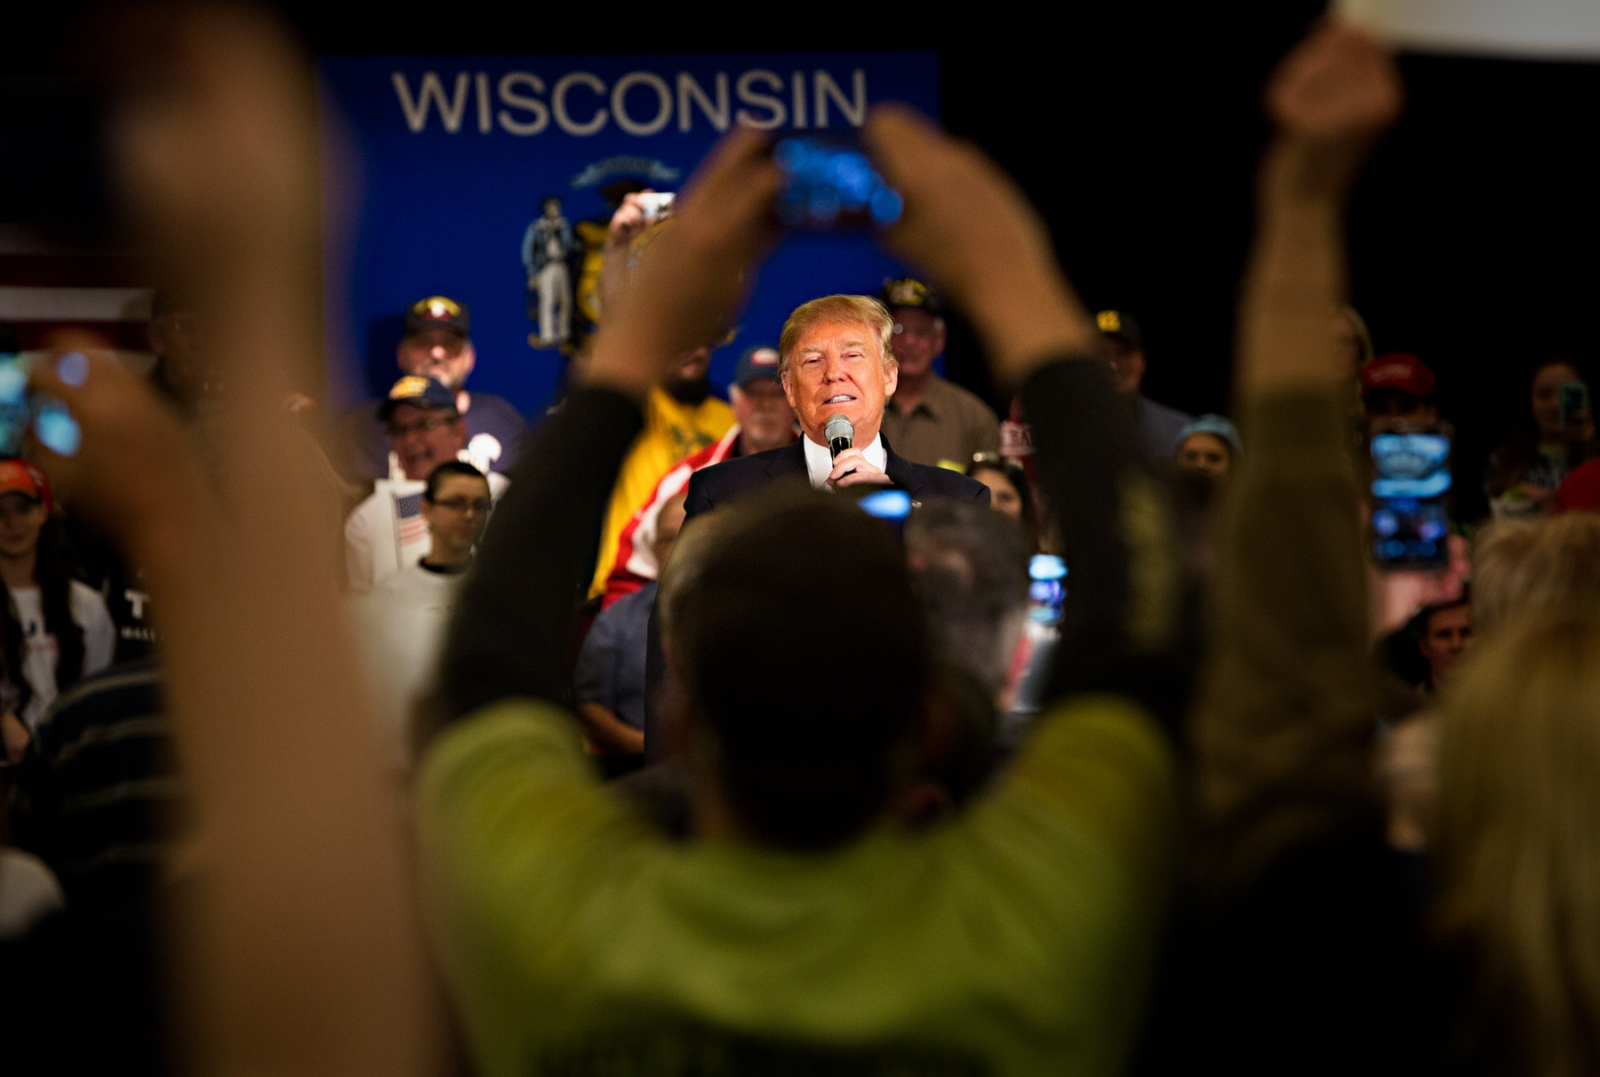 March 30, 2016 - Appleton, Wisconsin - Donald Trump was greeted enthusiastically by his supporters when he appeared in Appleton, Wisconsin at a rally during his presidential run.